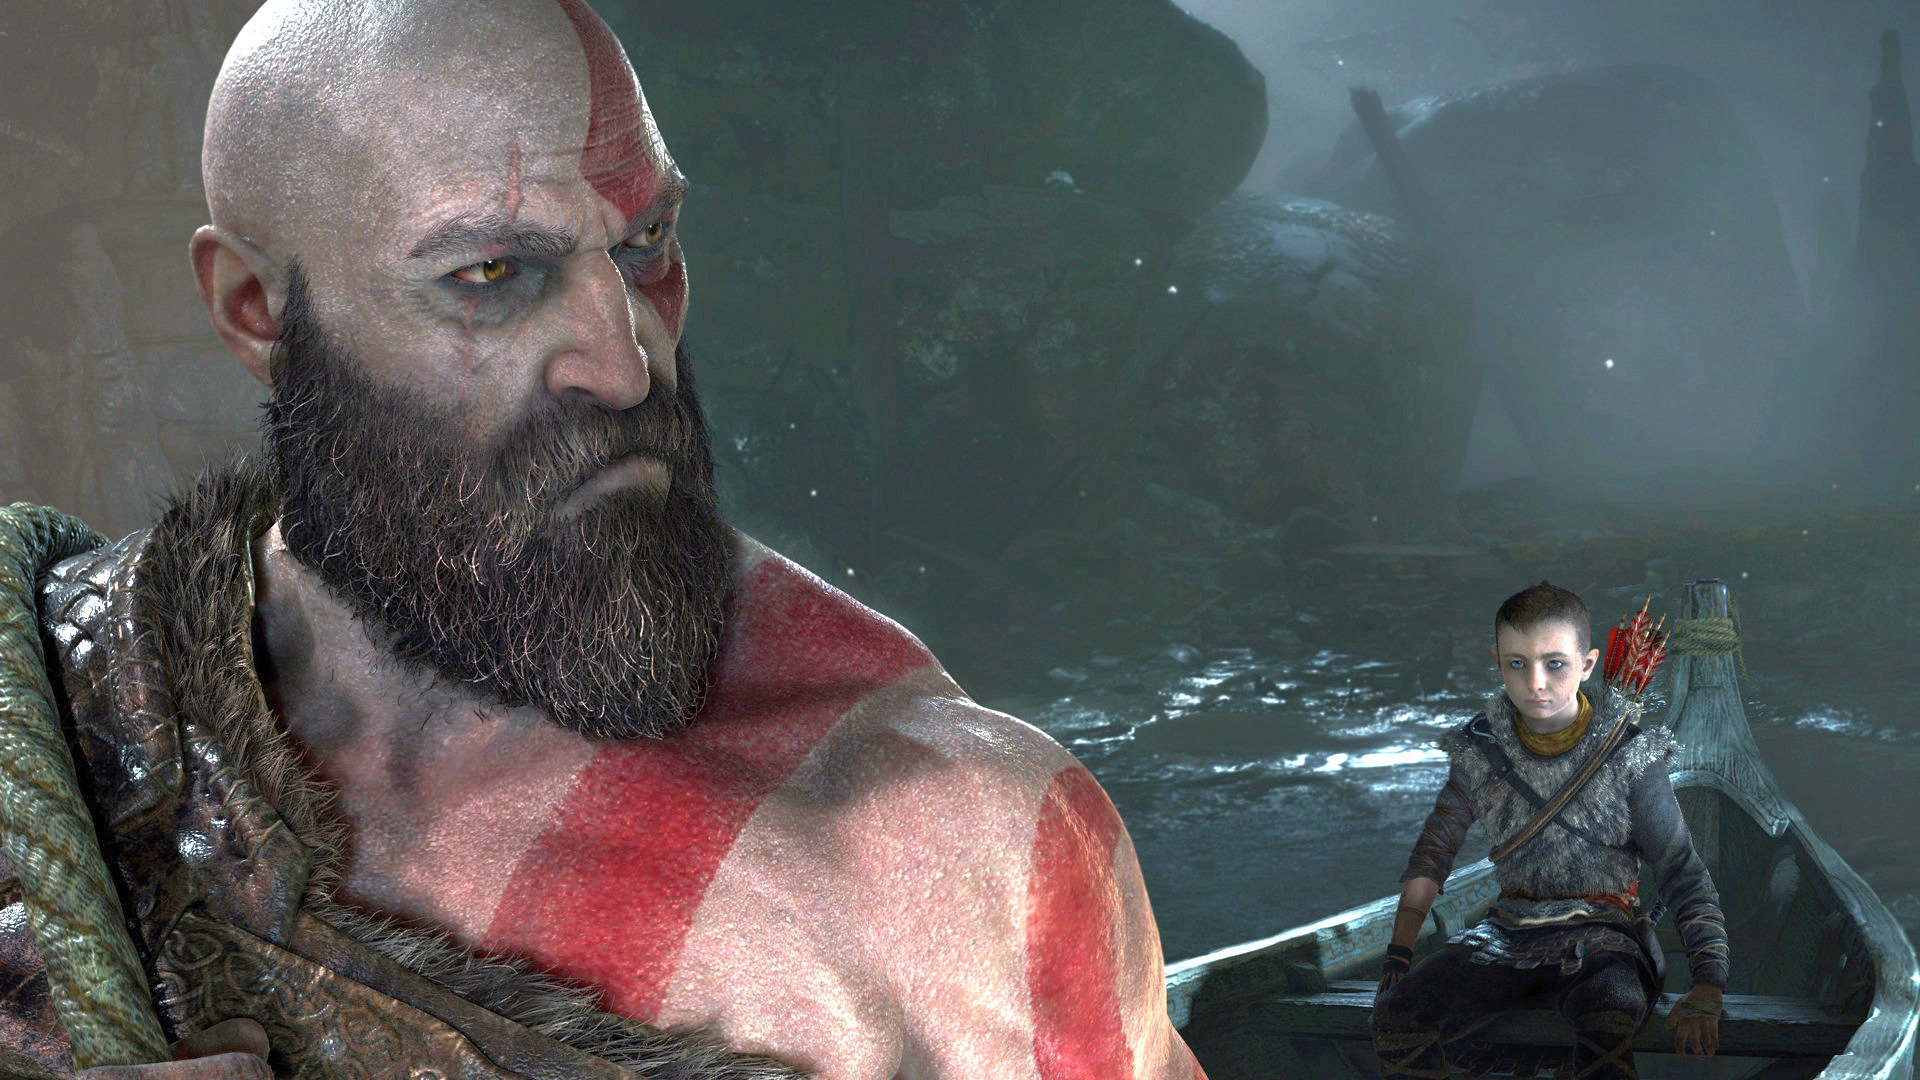 E3 2017: God of War Gameplay Trailer